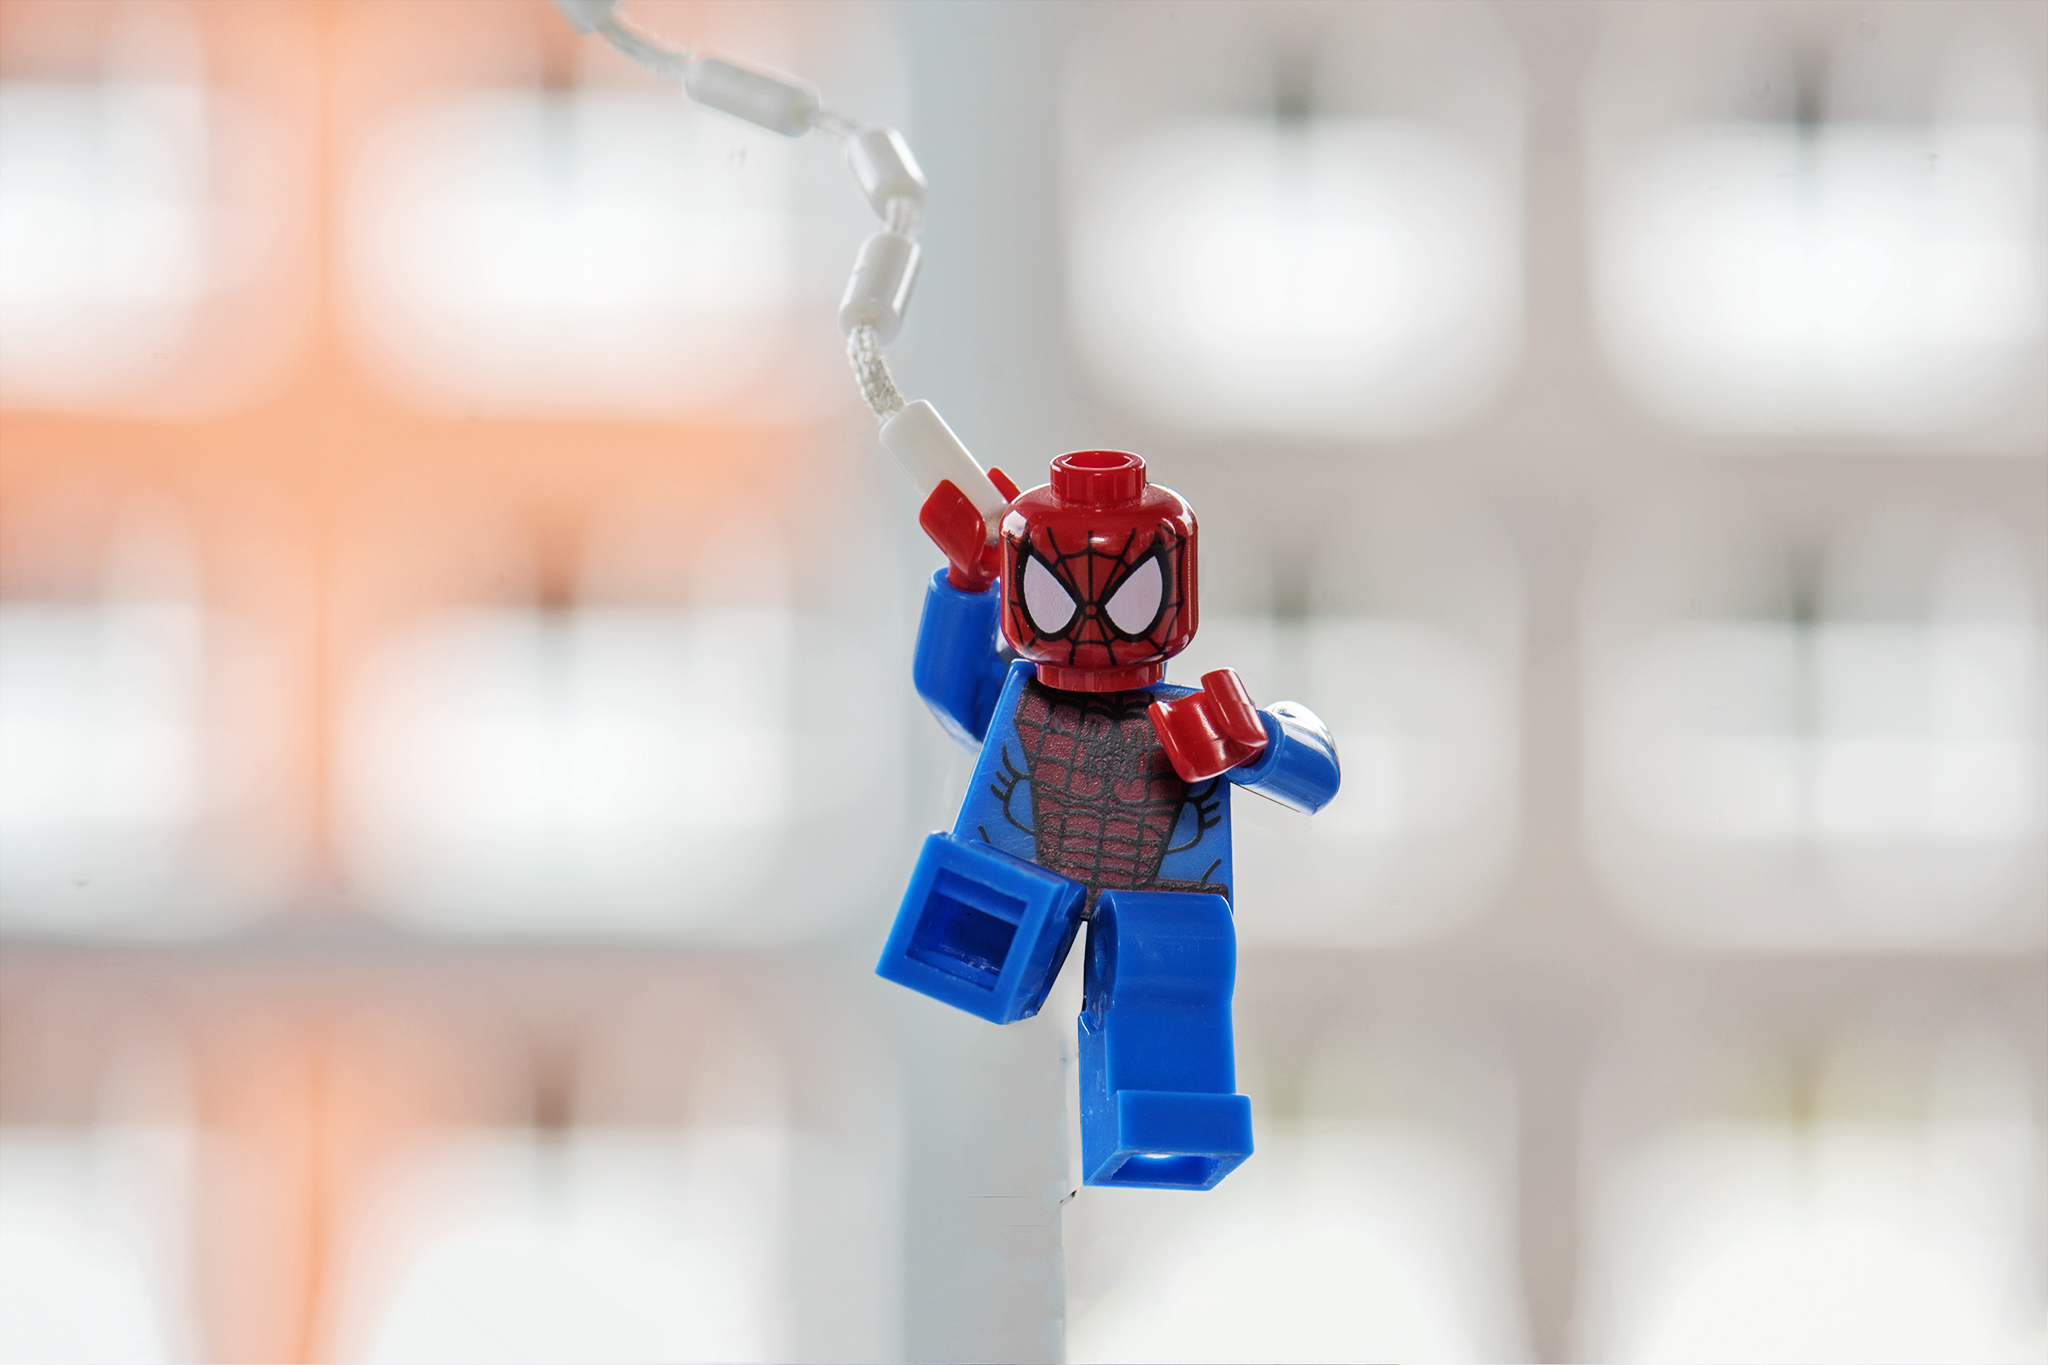 LEGO Spider-Man swinging